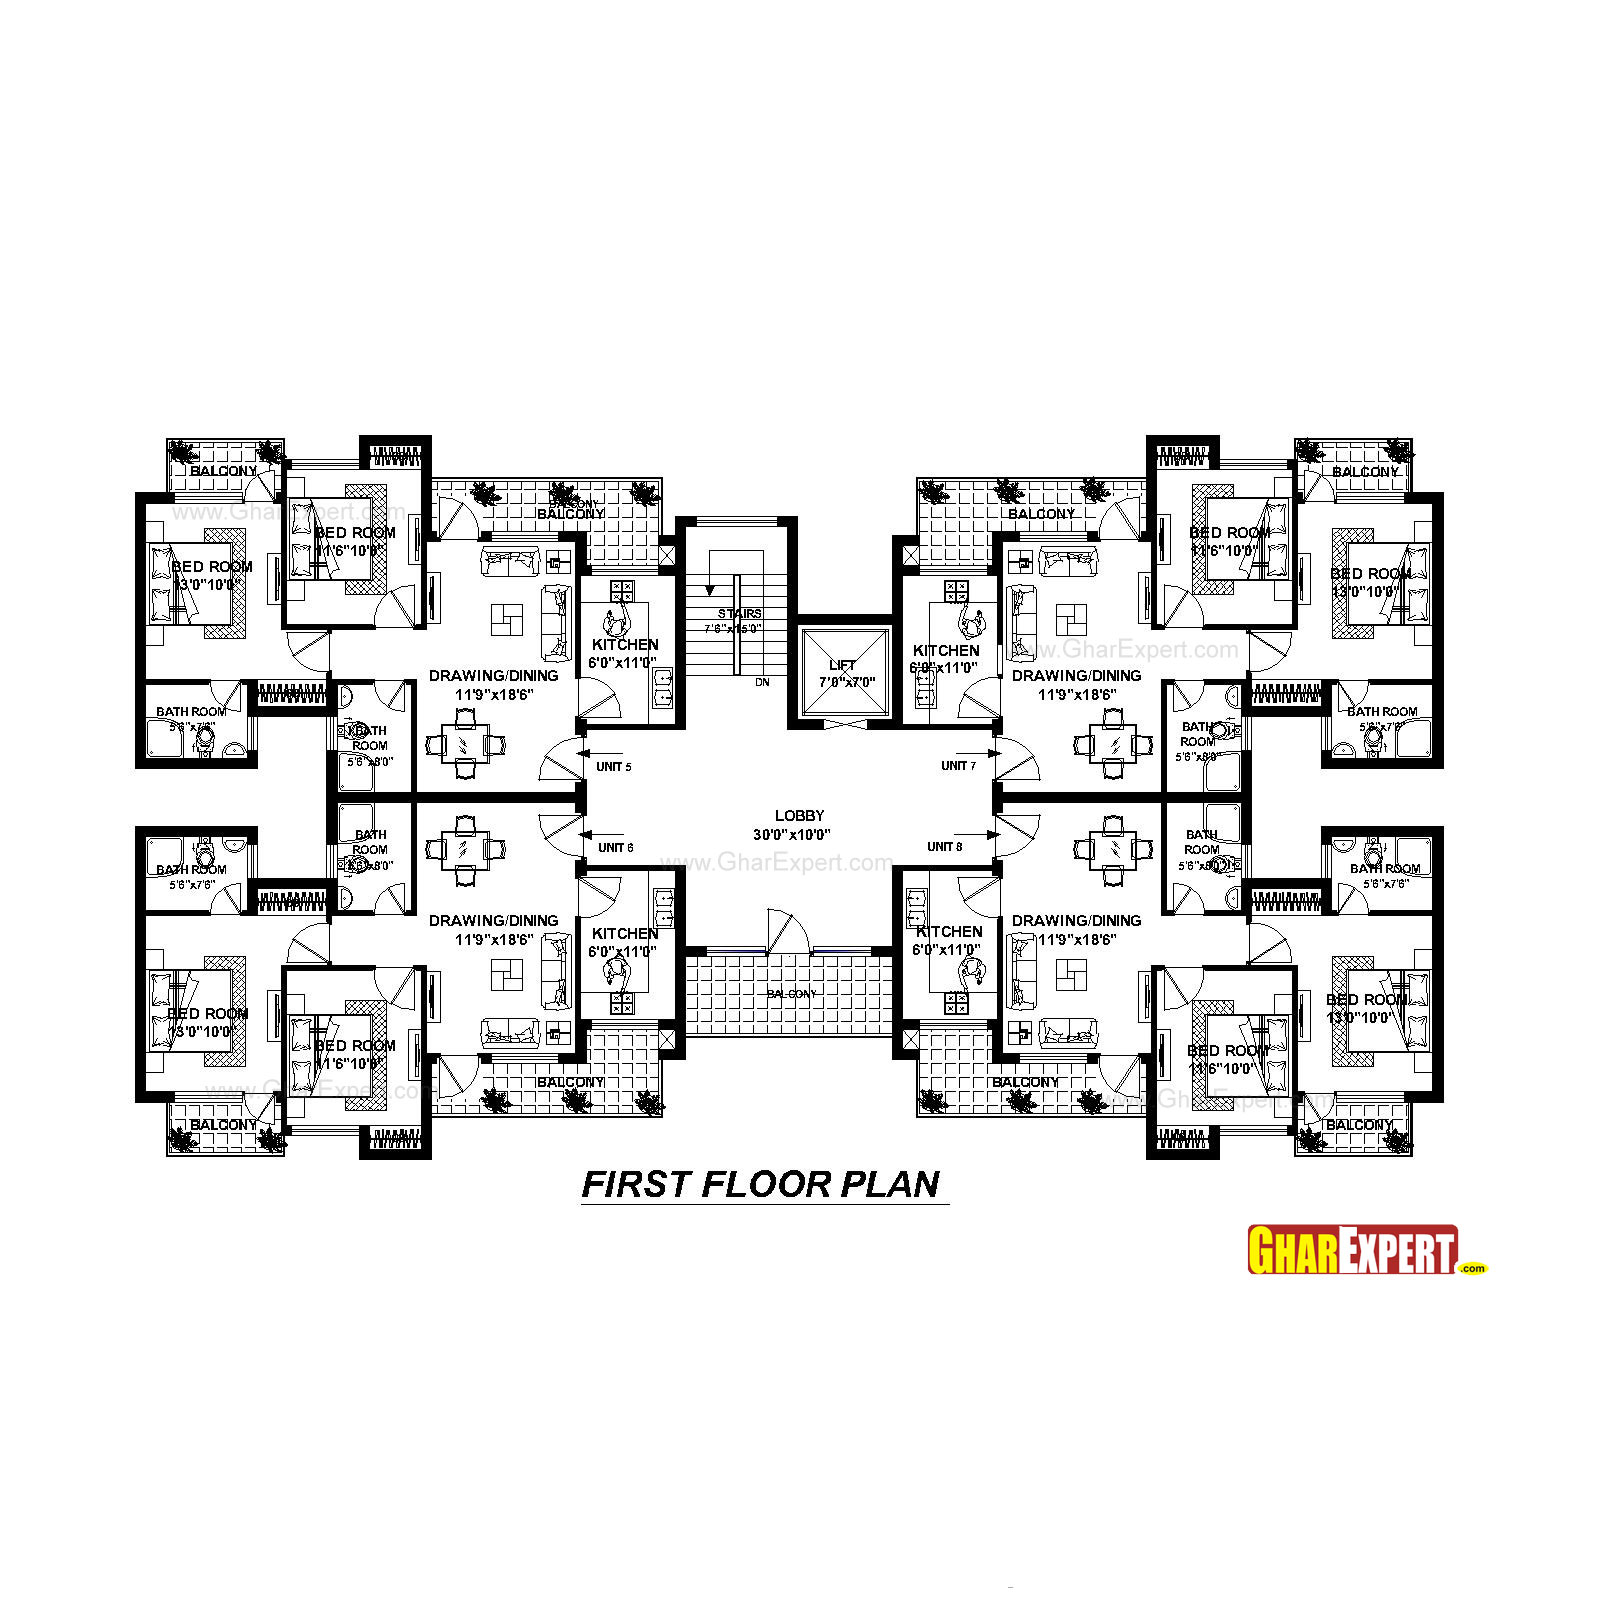 Apartment plan for 118 feet by 100 feet plot plot size for 100 square feet room size